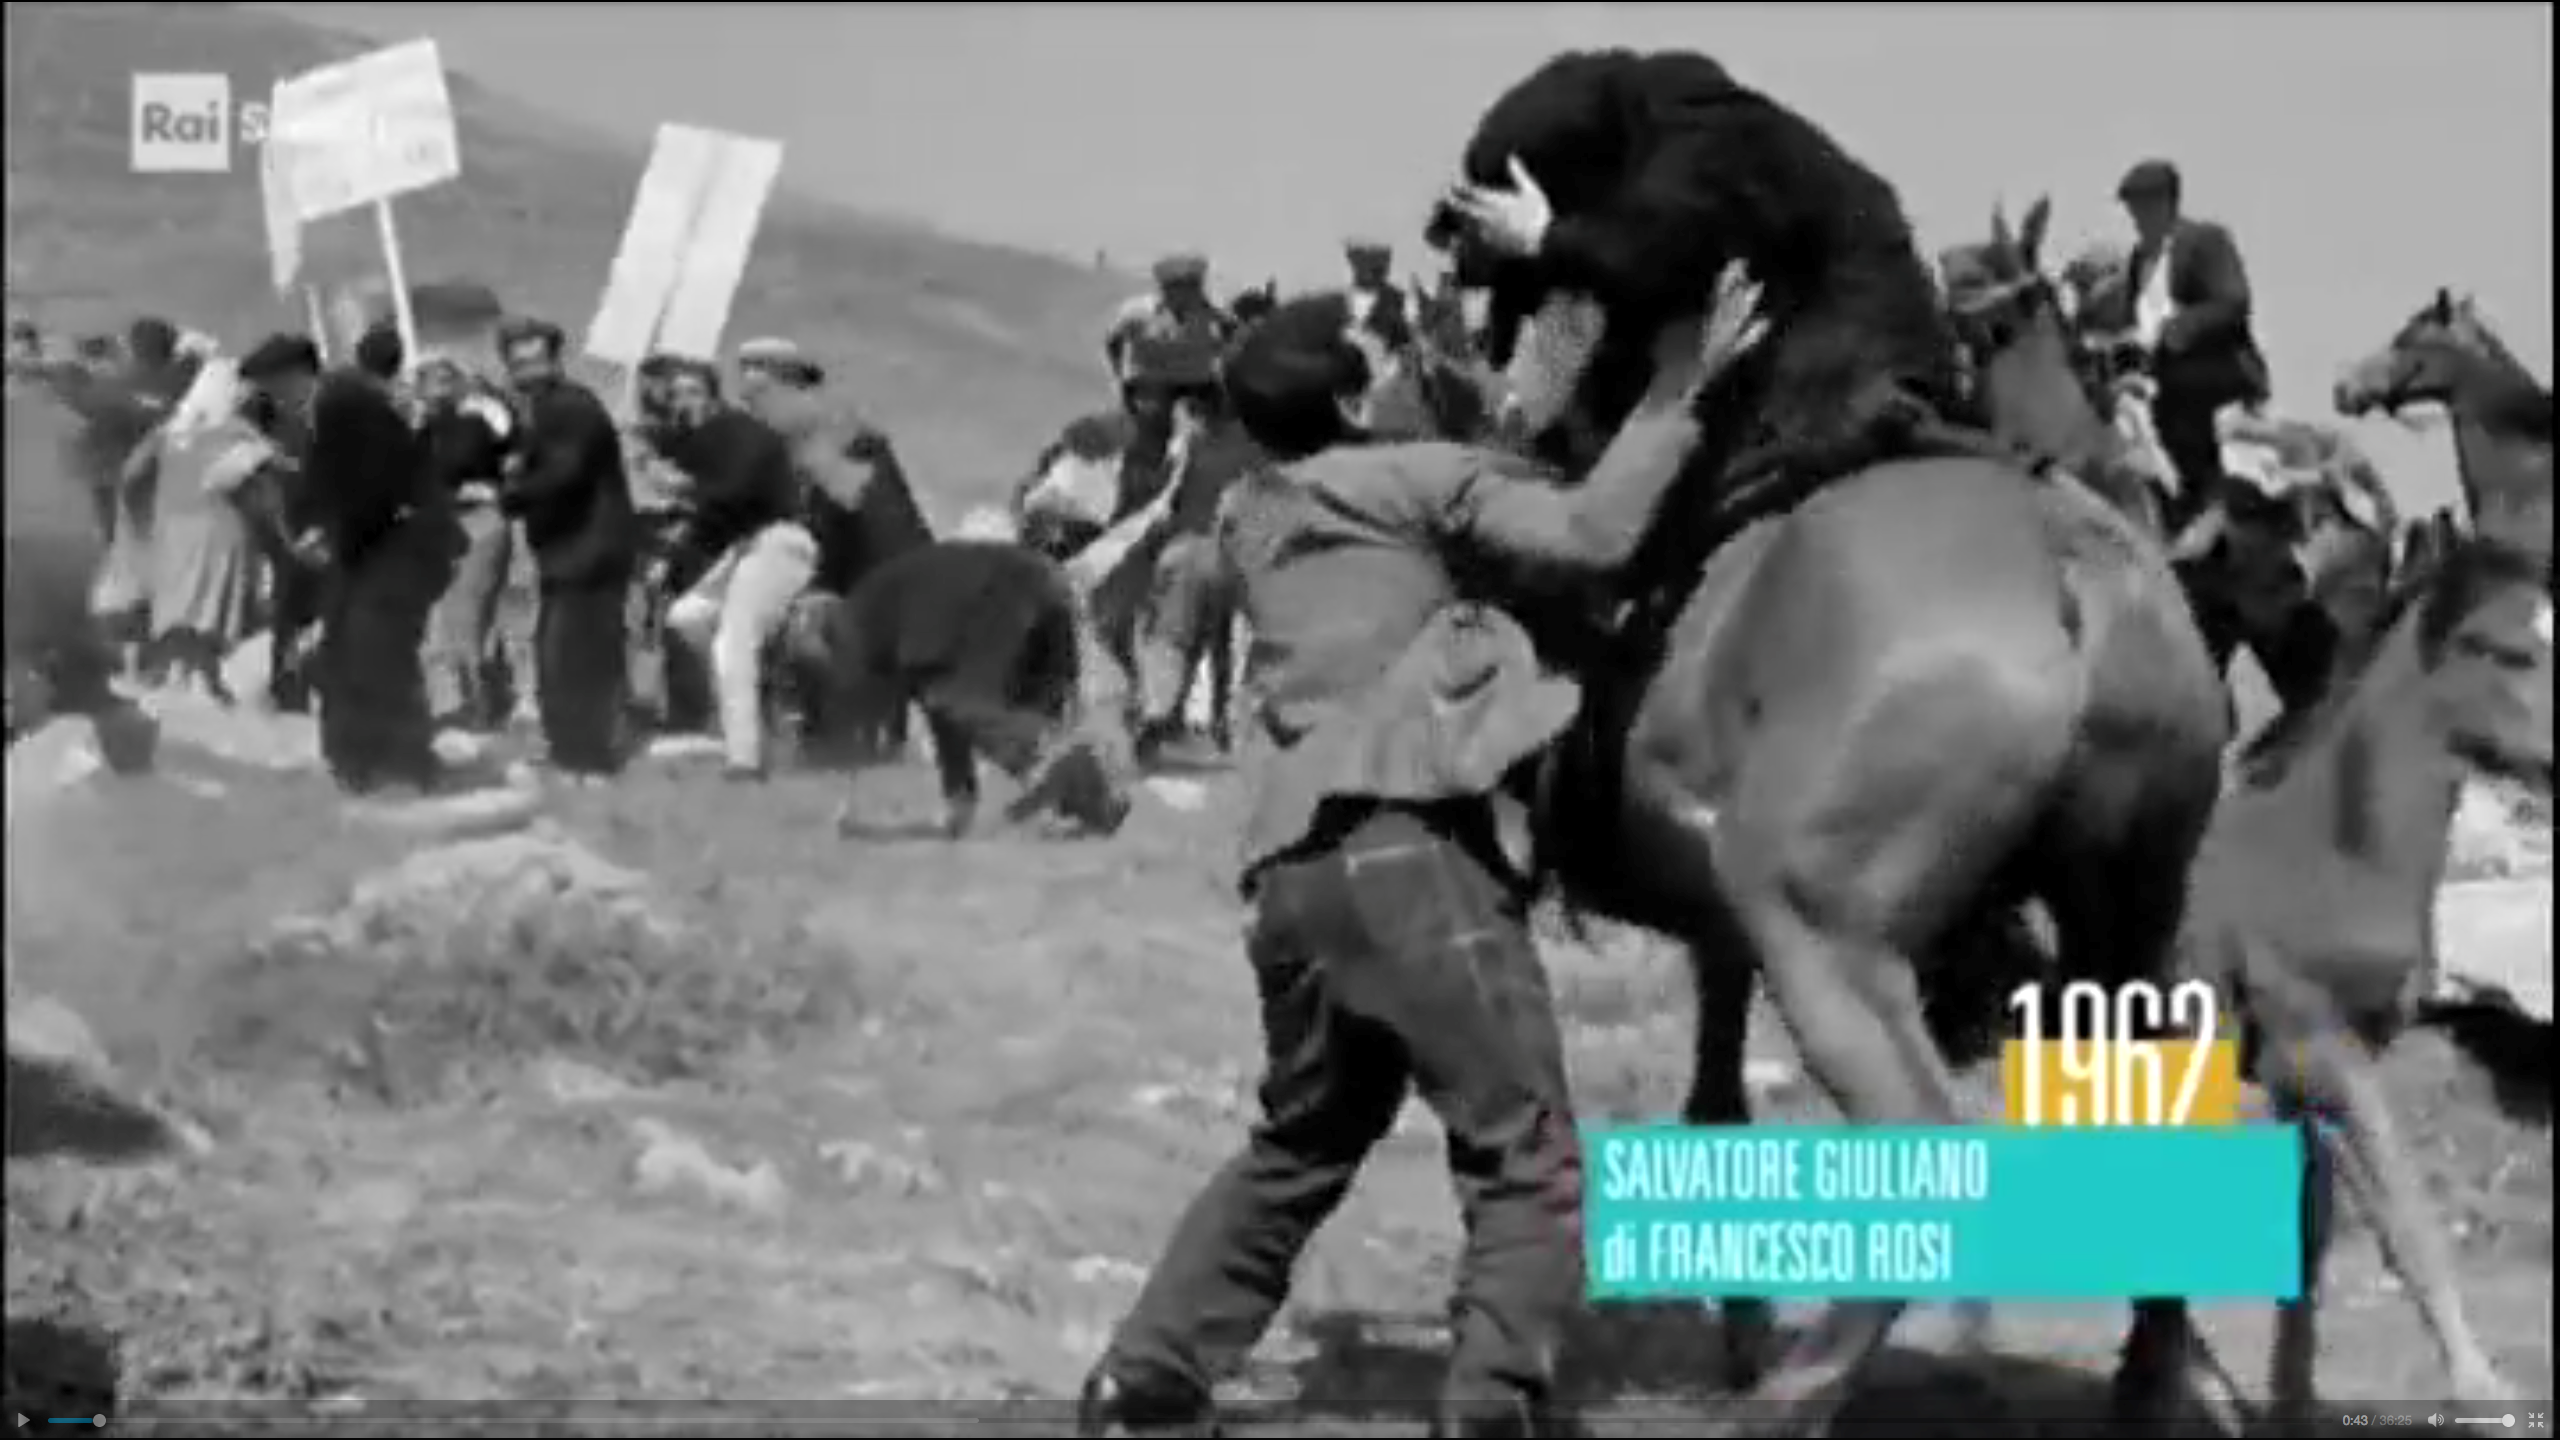 The gun-fire is beginning, people try to escape. Screenshot taken from the film Salvatore Giuliano reused in the program broadcast on RAI 3.